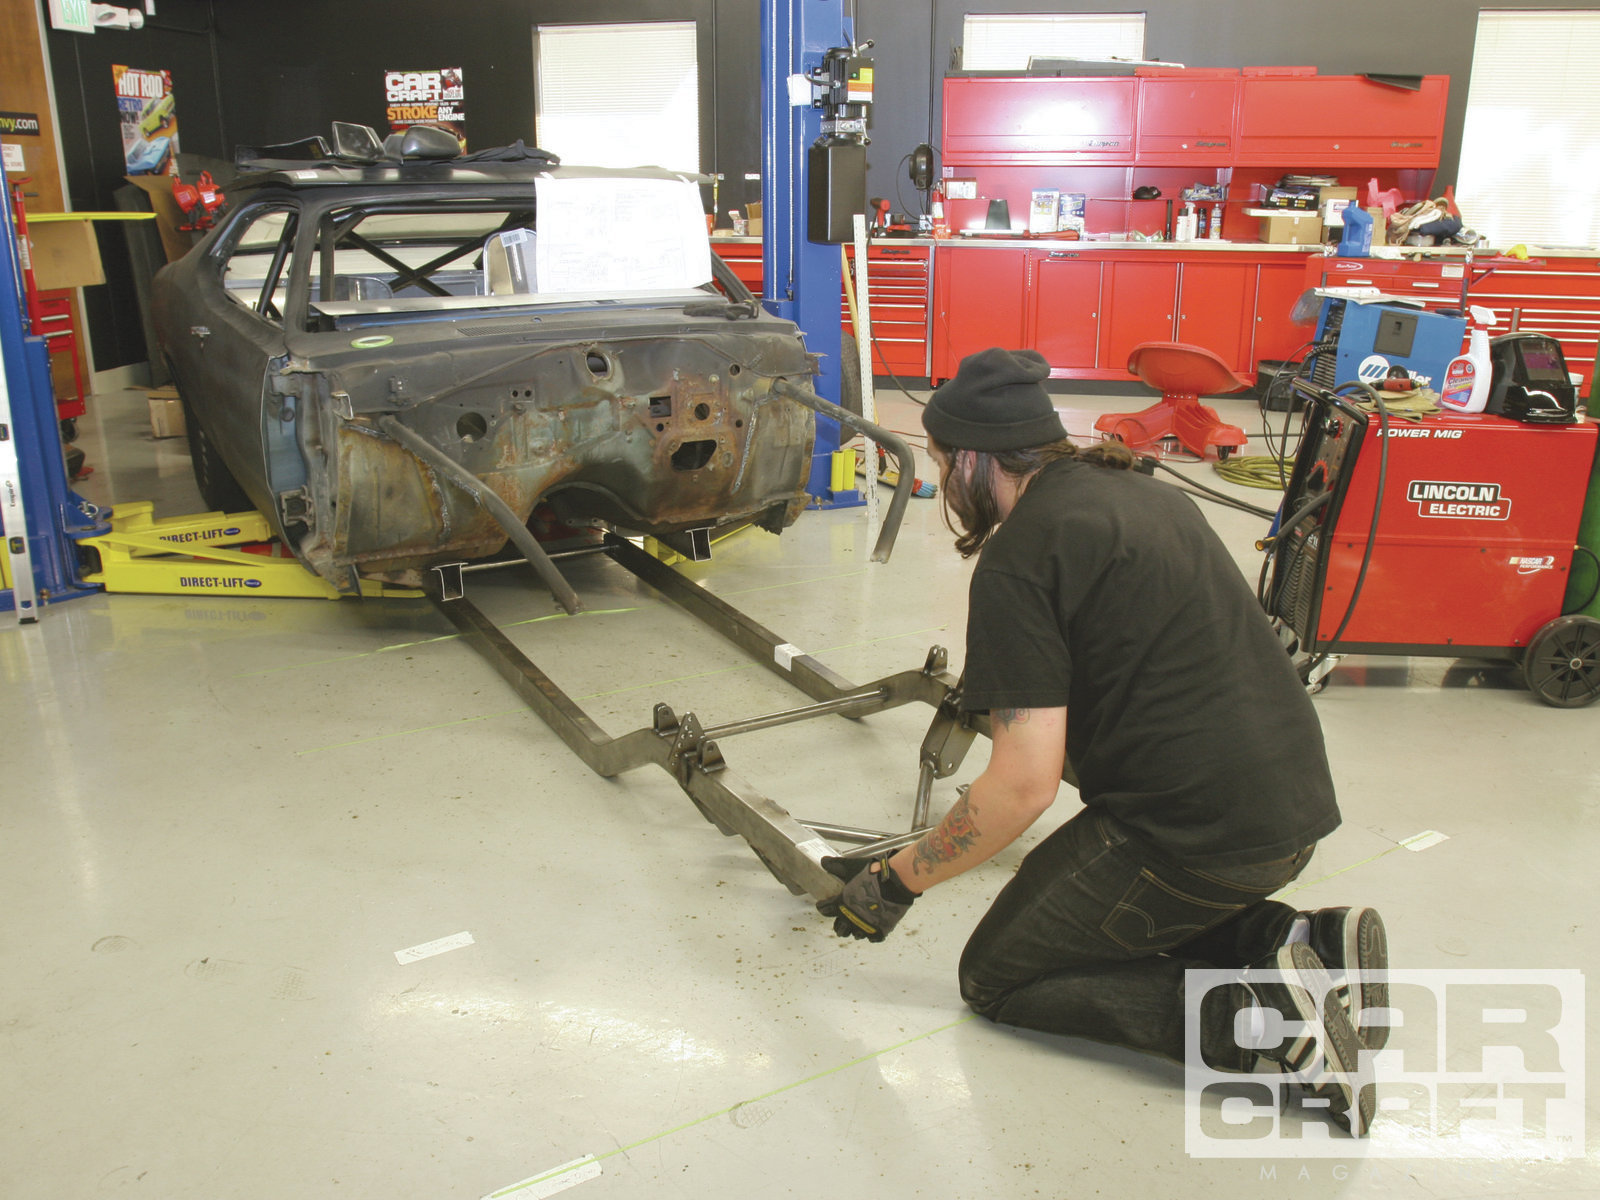 The suspension mounts were already welded in place by the guys at Chris Alston. It's an option we recommend. The frame was long so we could cut it to fit.